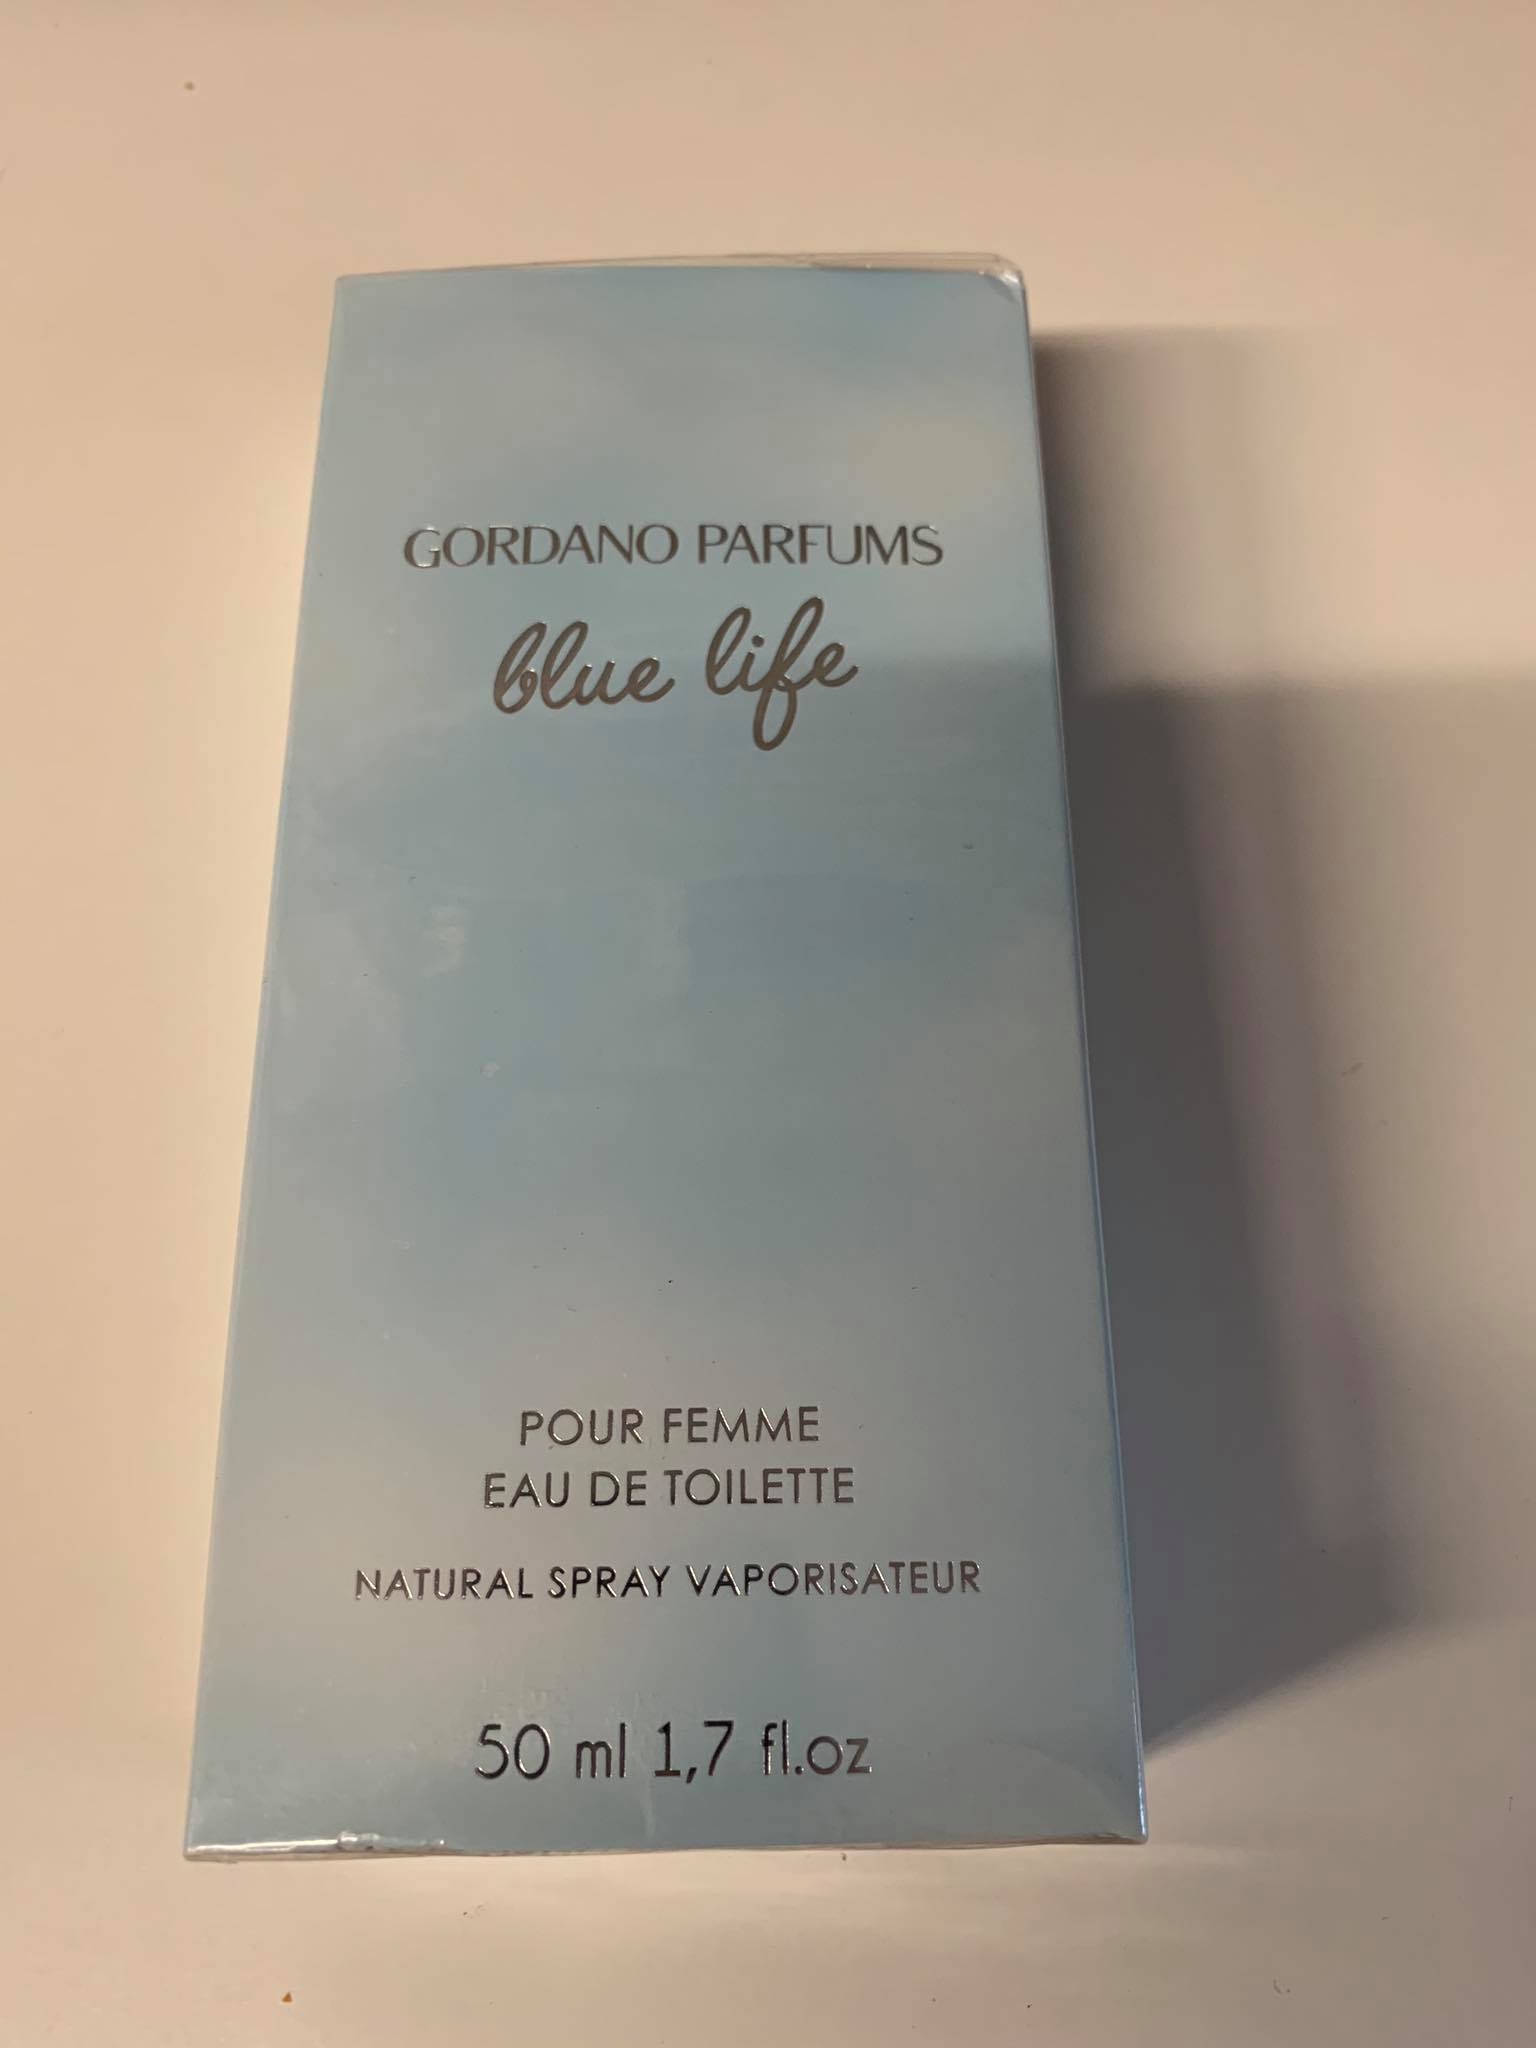 Gordano Parfums Blue Life, edt 50ml (Alternatív illat Dolce & Gabbana Light Blue)